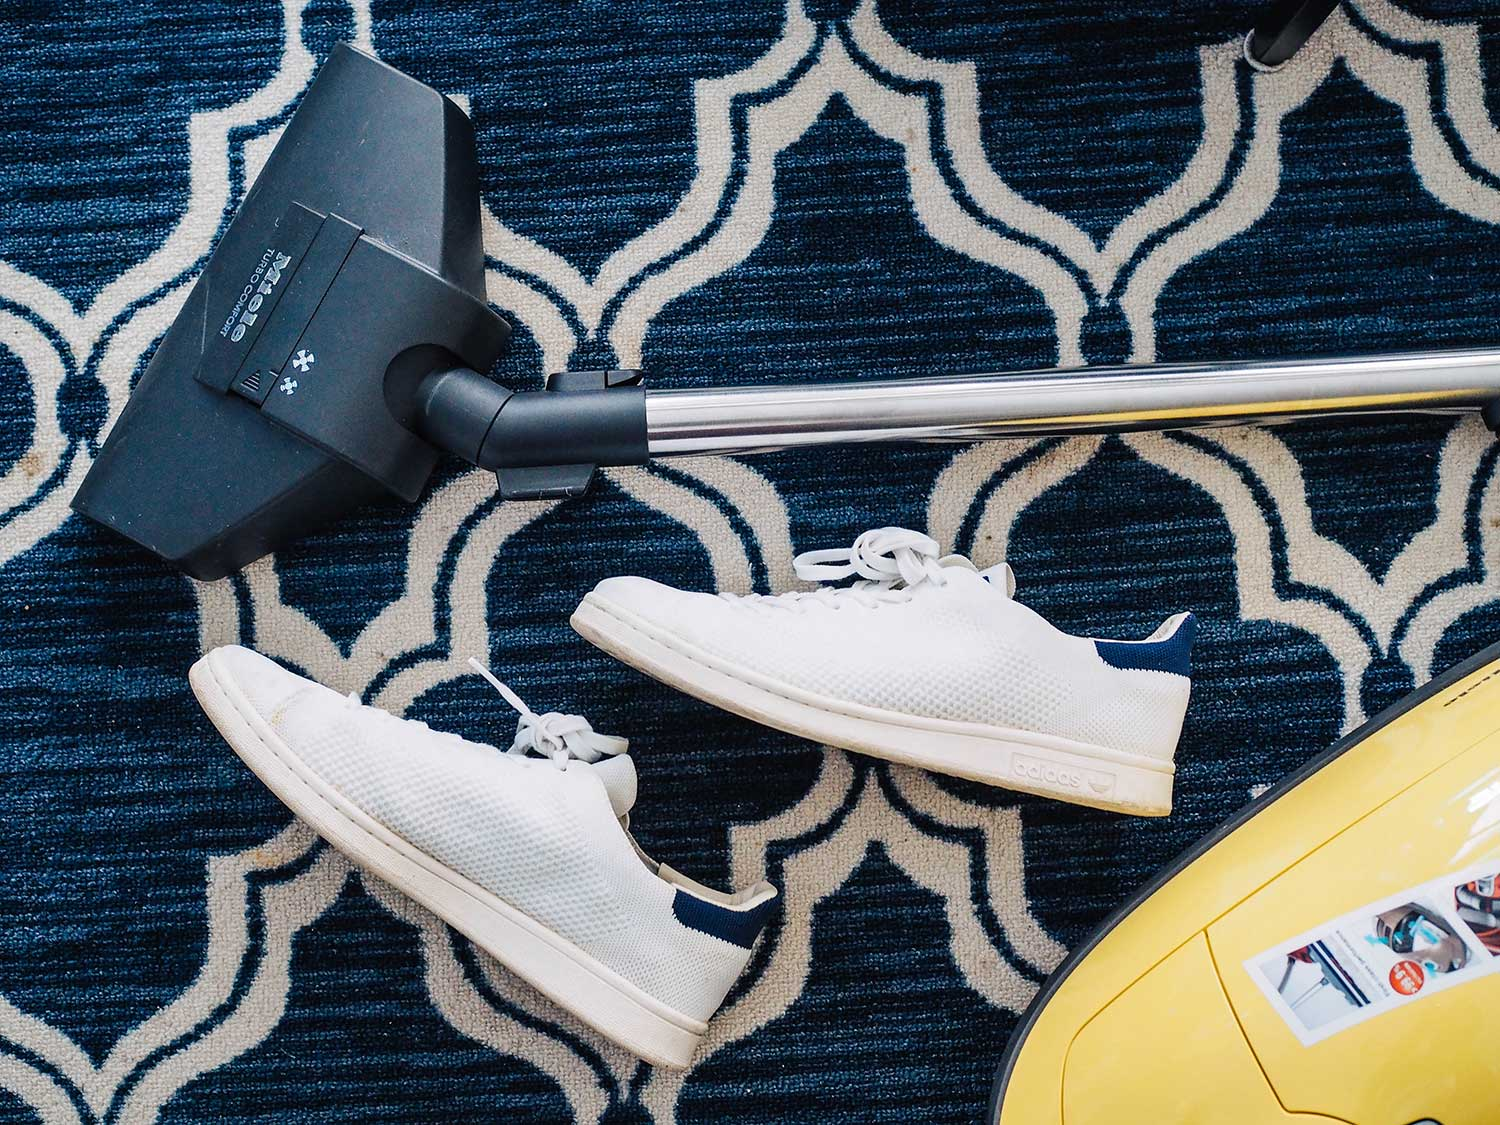 Cordless vacuum with white sneakers on rug.